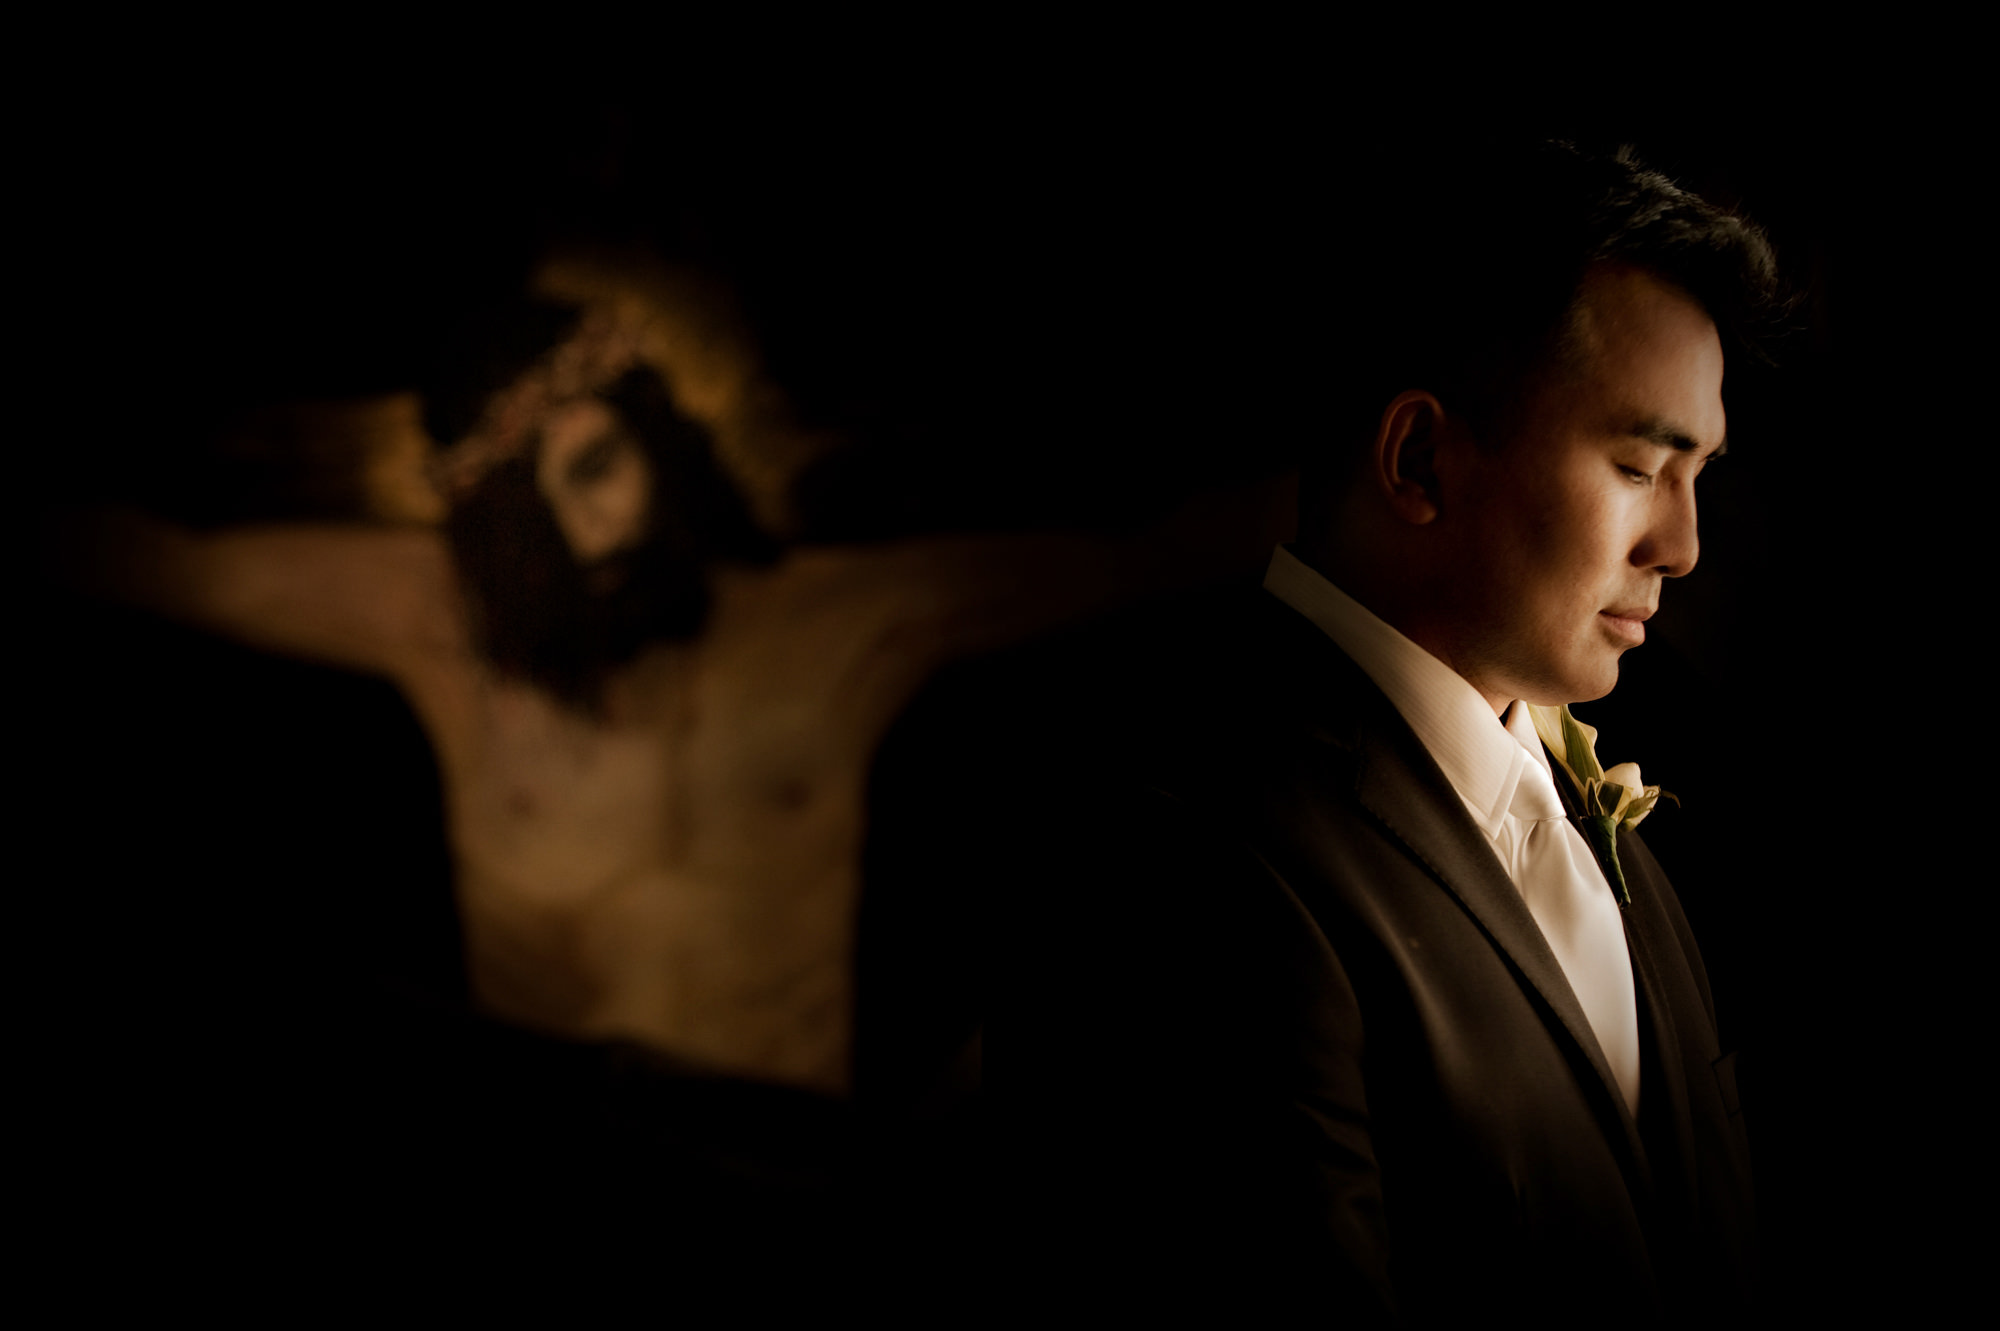 Soft portrait of groom's profile with jesus in backgroundphoto by Cliff Mautner